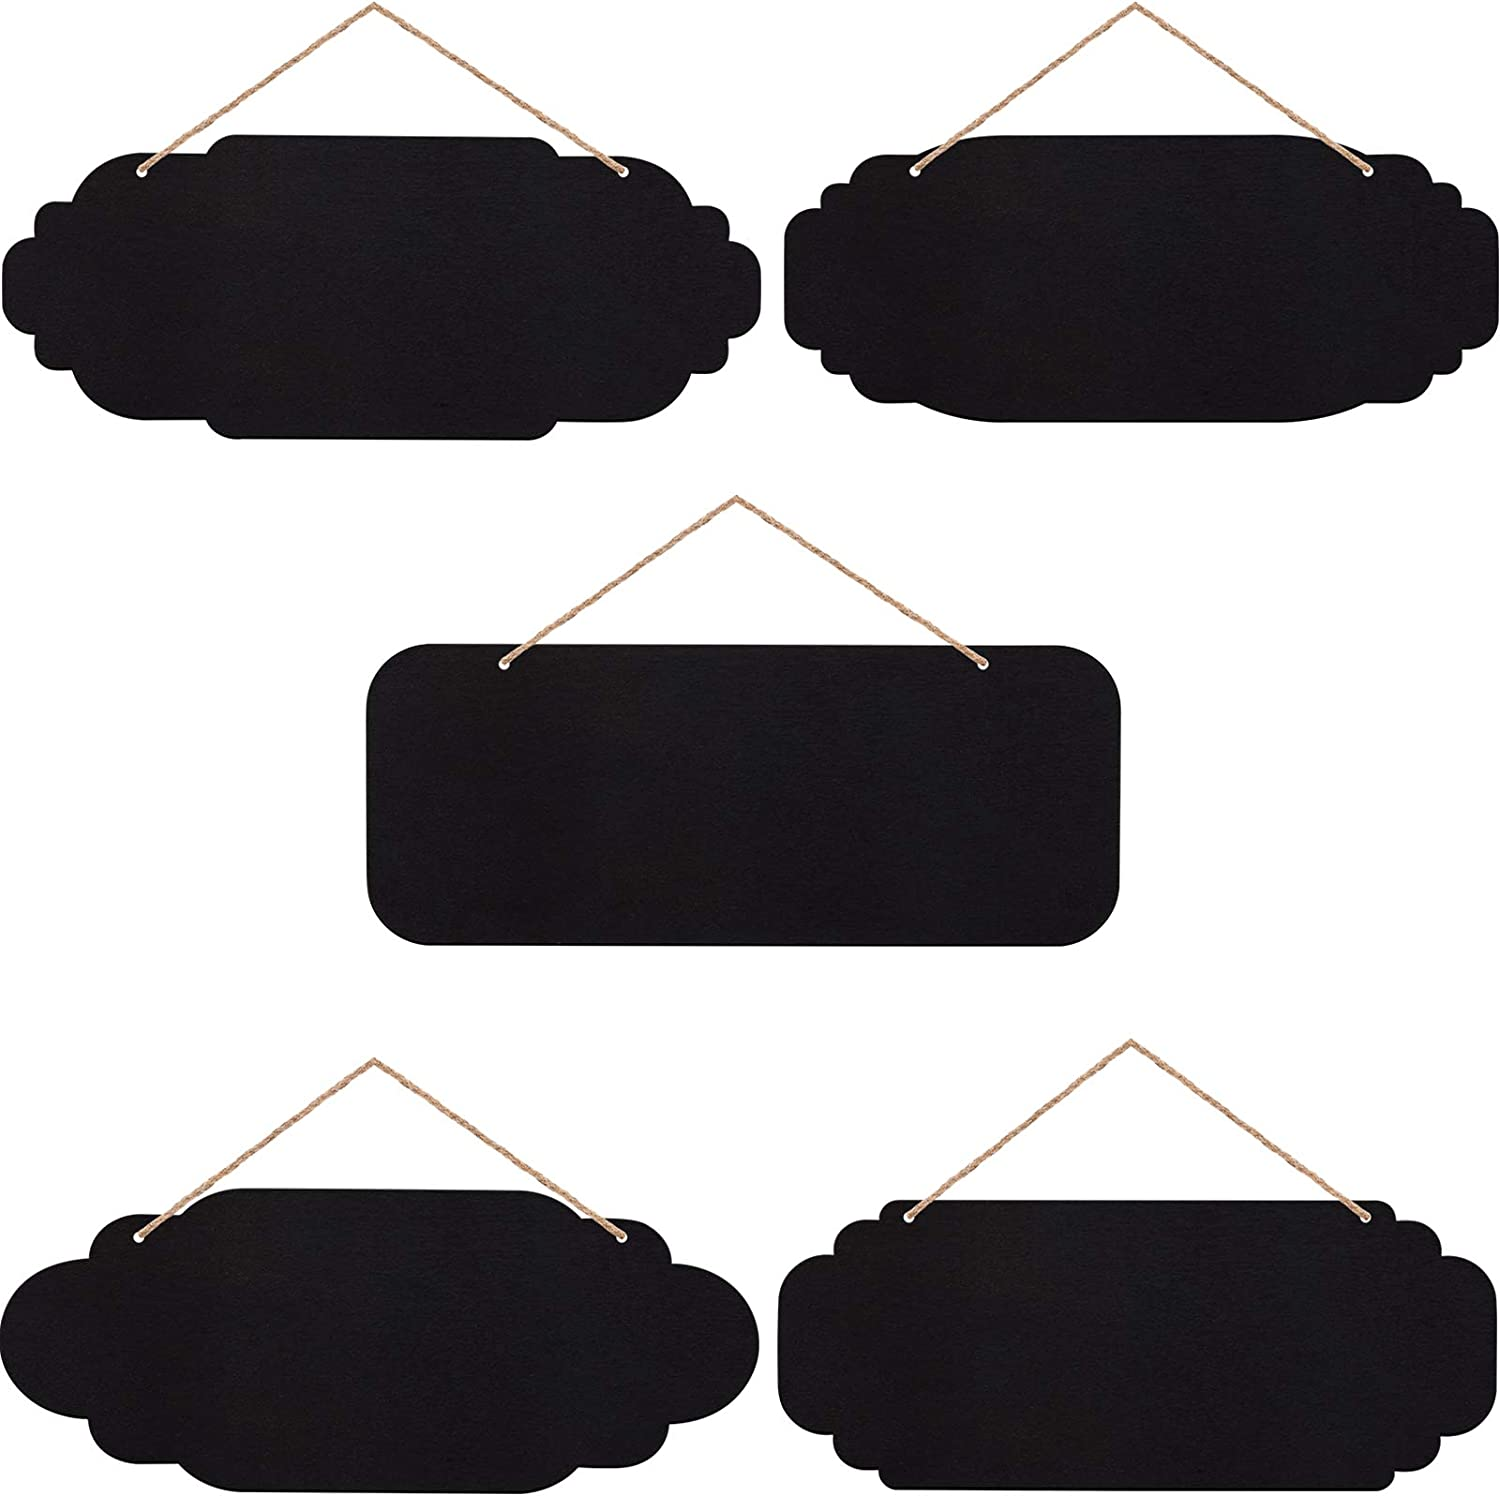 10 Pieces Unfinished Hanging Wood Sign Rectangle Blank Hanging Decorative Rectangle Hanging Wooden Oval Hanging Wooden Slices Banners with Ropes for Painting Writing DIY Crafts (Black)